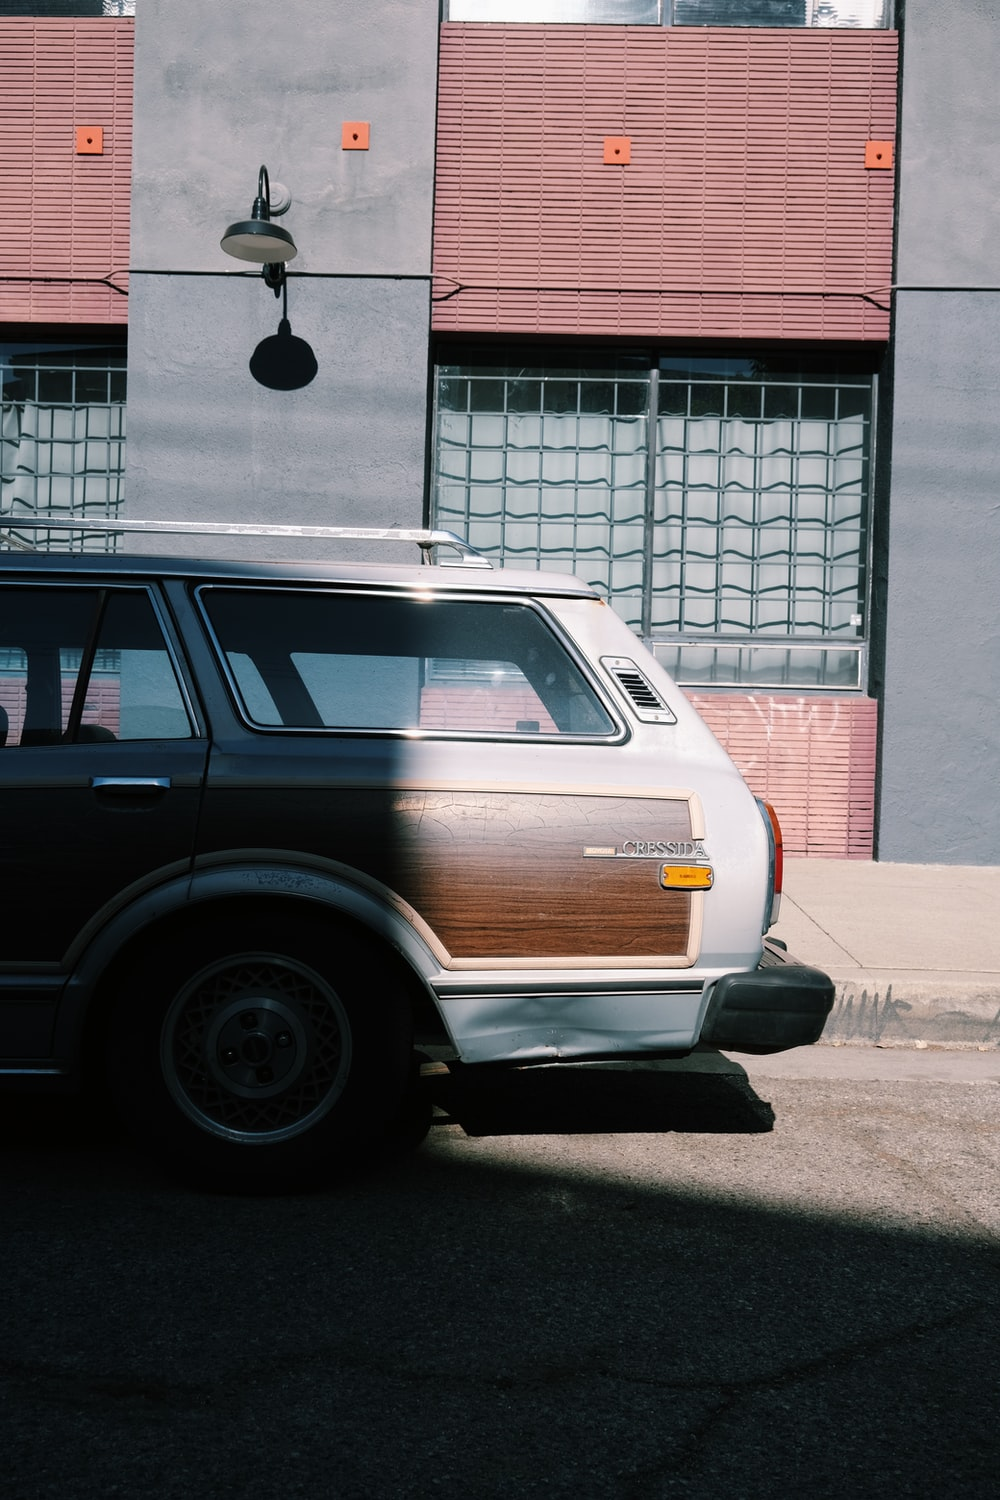 brown station wagon parked beside red and white building